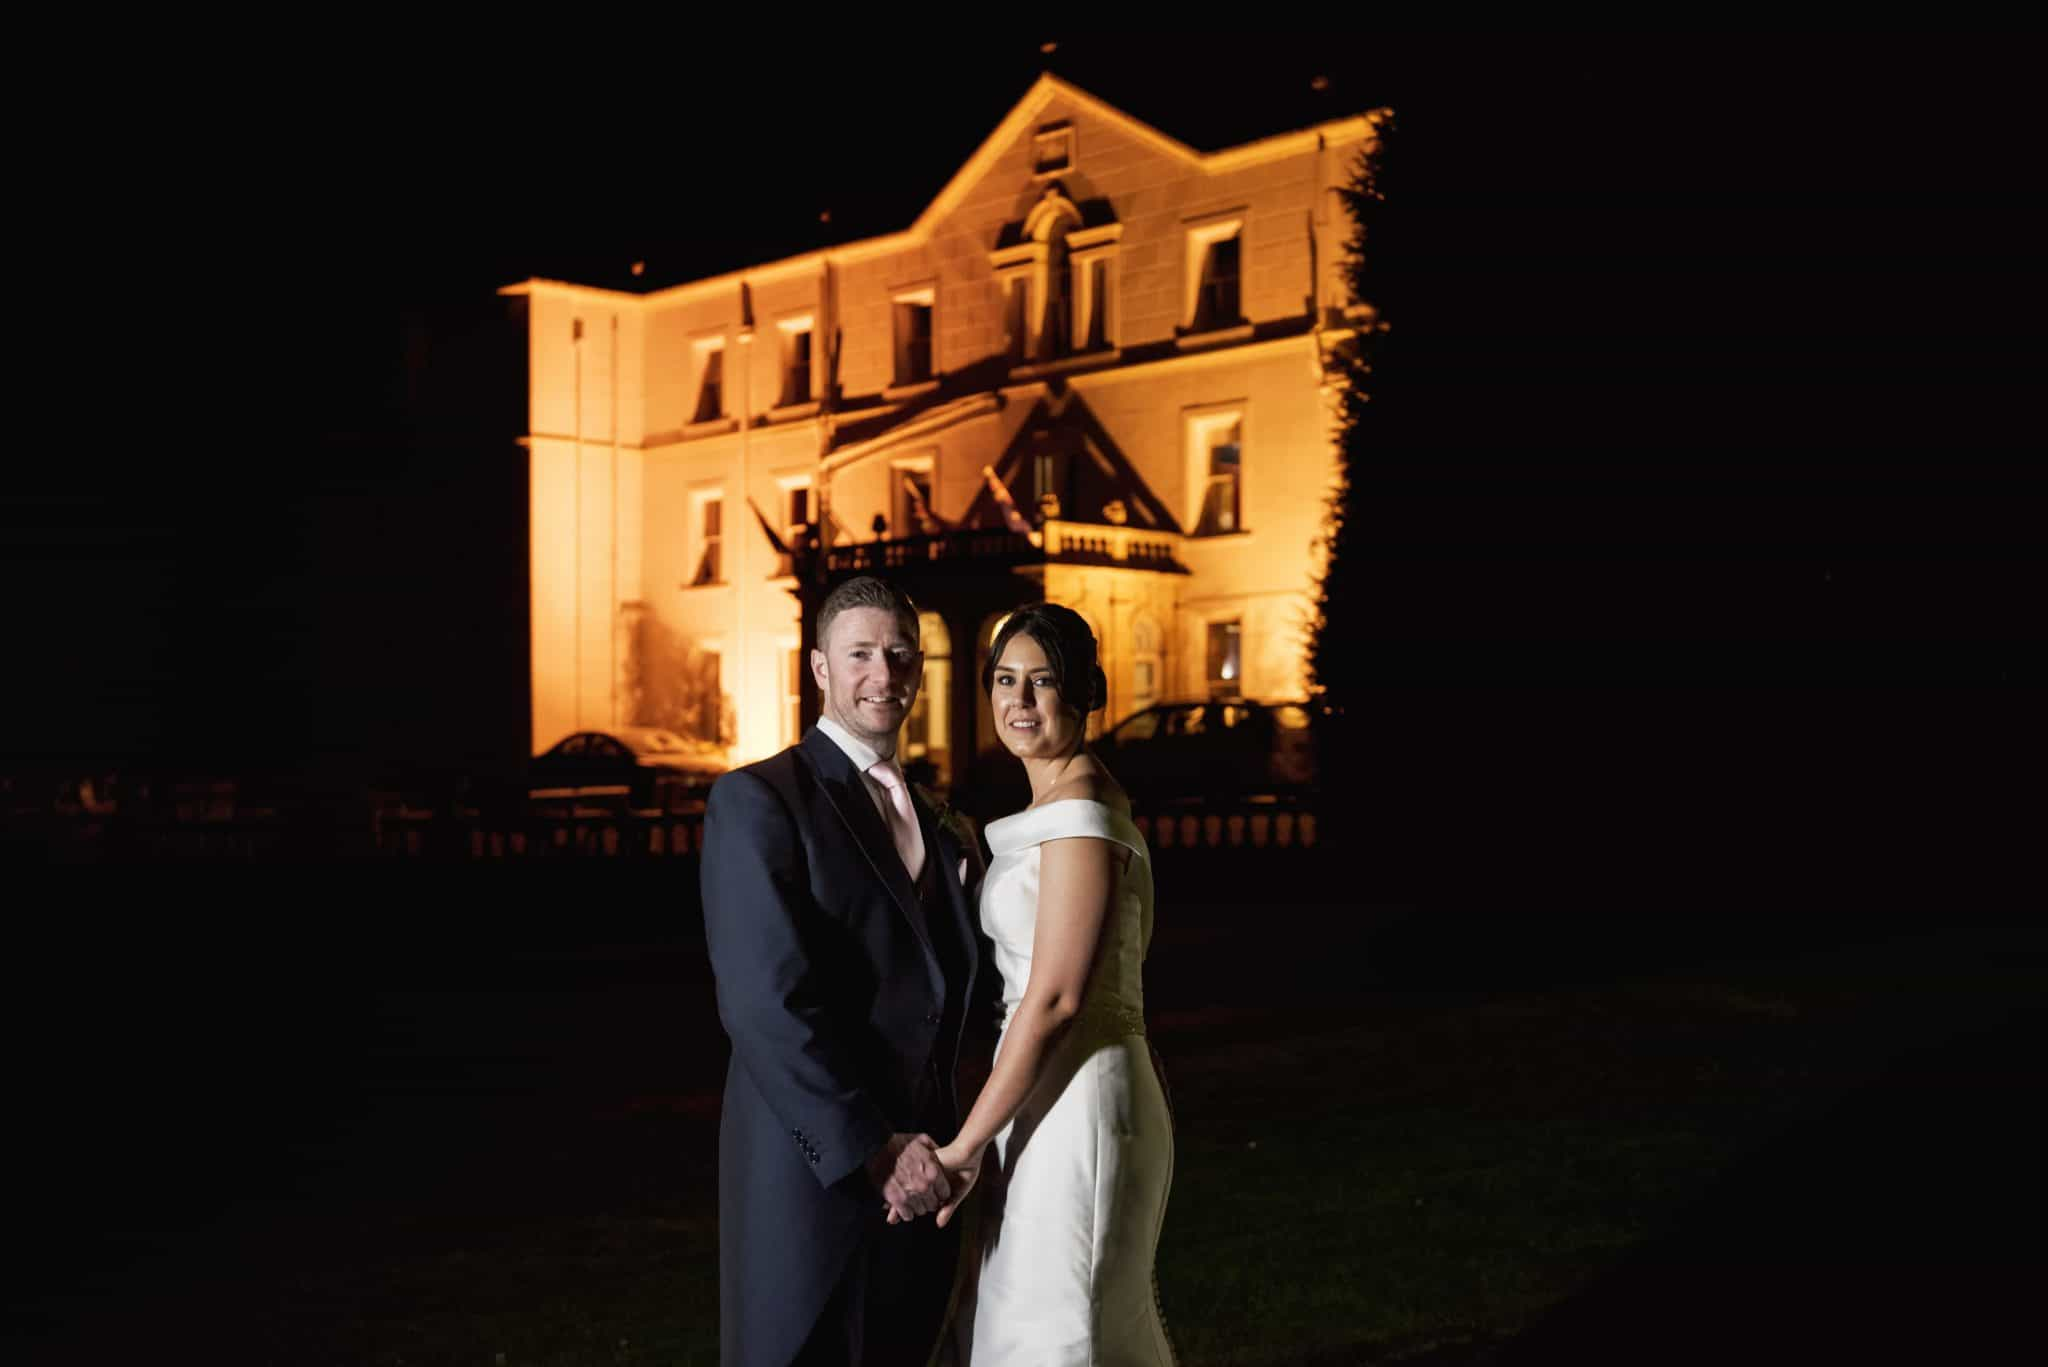 Bride and Groom stood at night time in front of a lit up Court Colman Manor, Bridgend